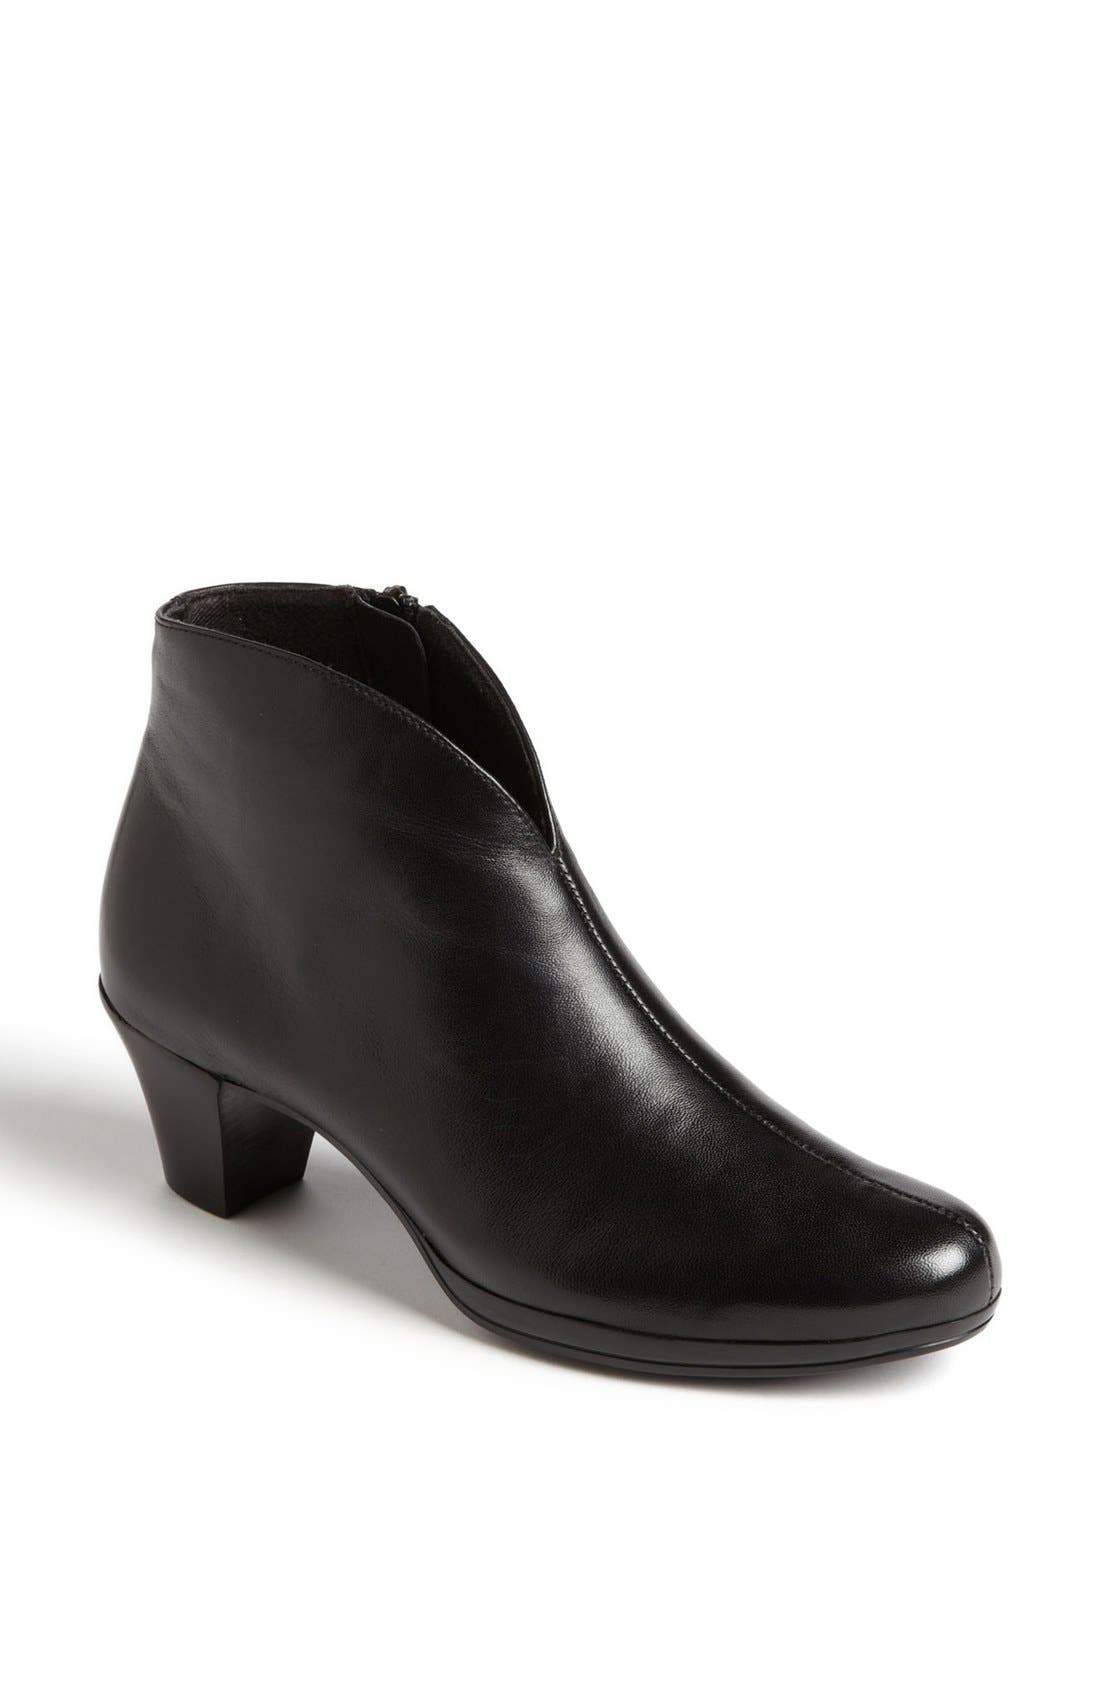 MUNRO, 'Robyn' Boot, Main thumbnail 1, color, BLACK LEATHER